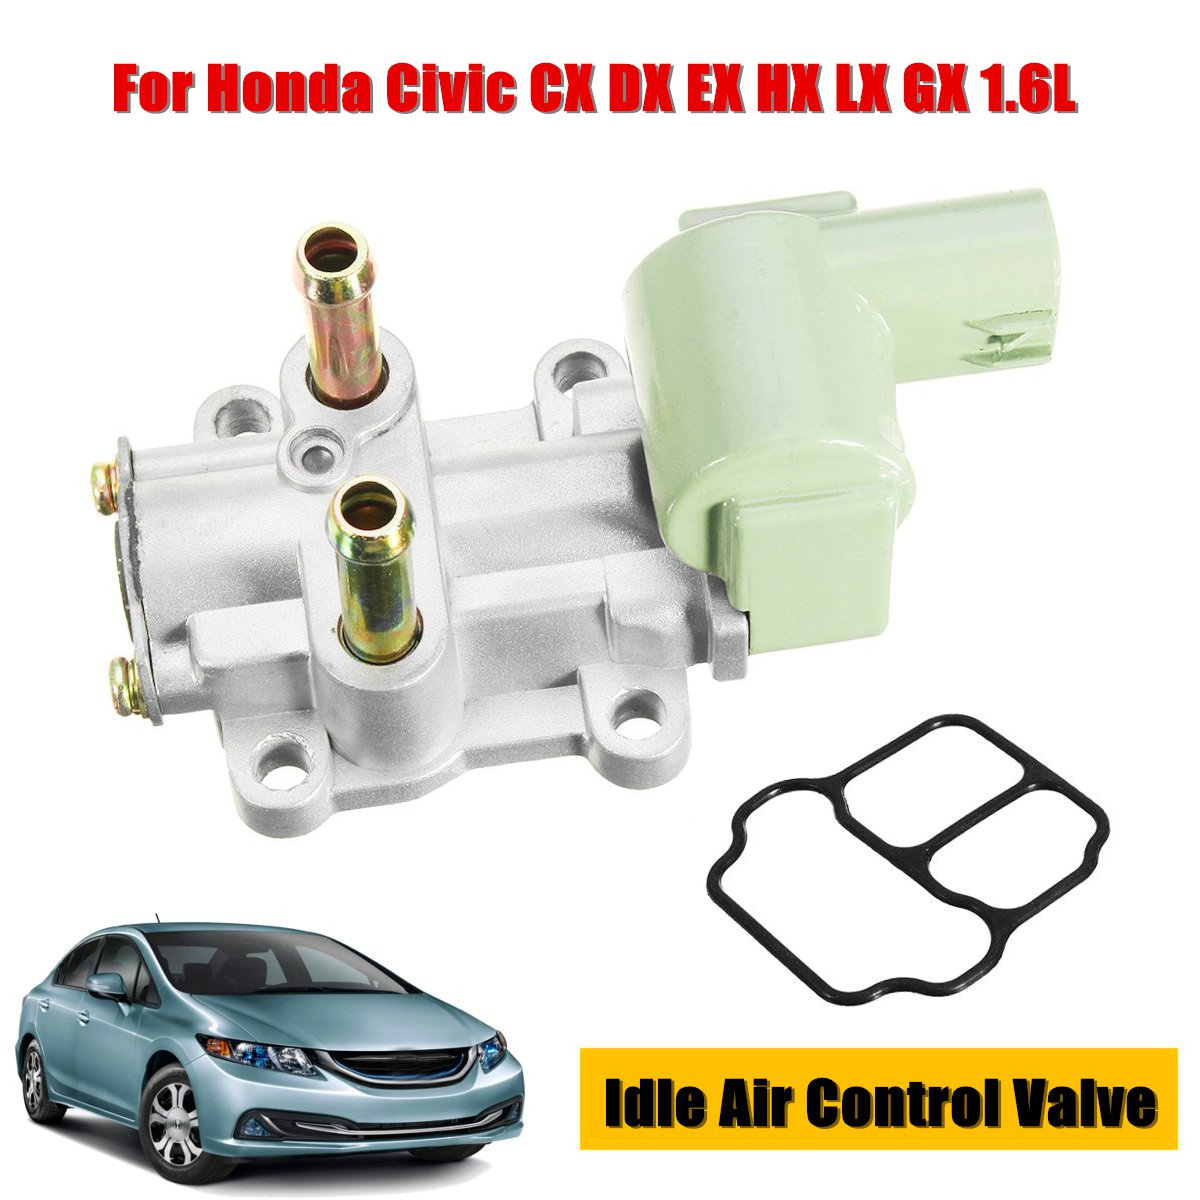 Idle Air Control Valve IACV IAC For Honda Civic CX DX EX HX LX GX 1.6L SOHC